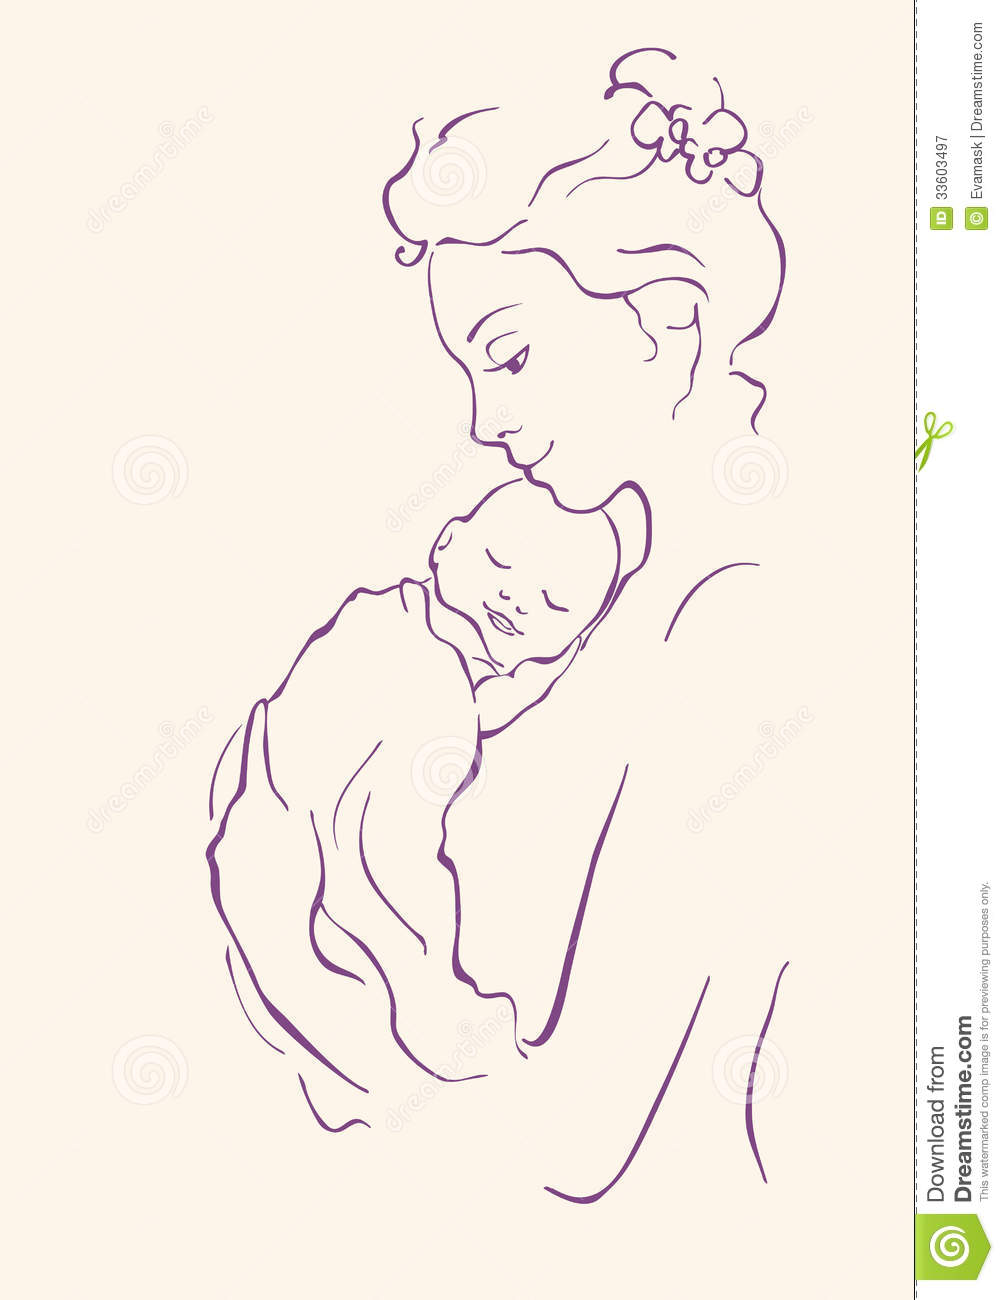 Line Art Baby : Mother and child stock vector illustration of human